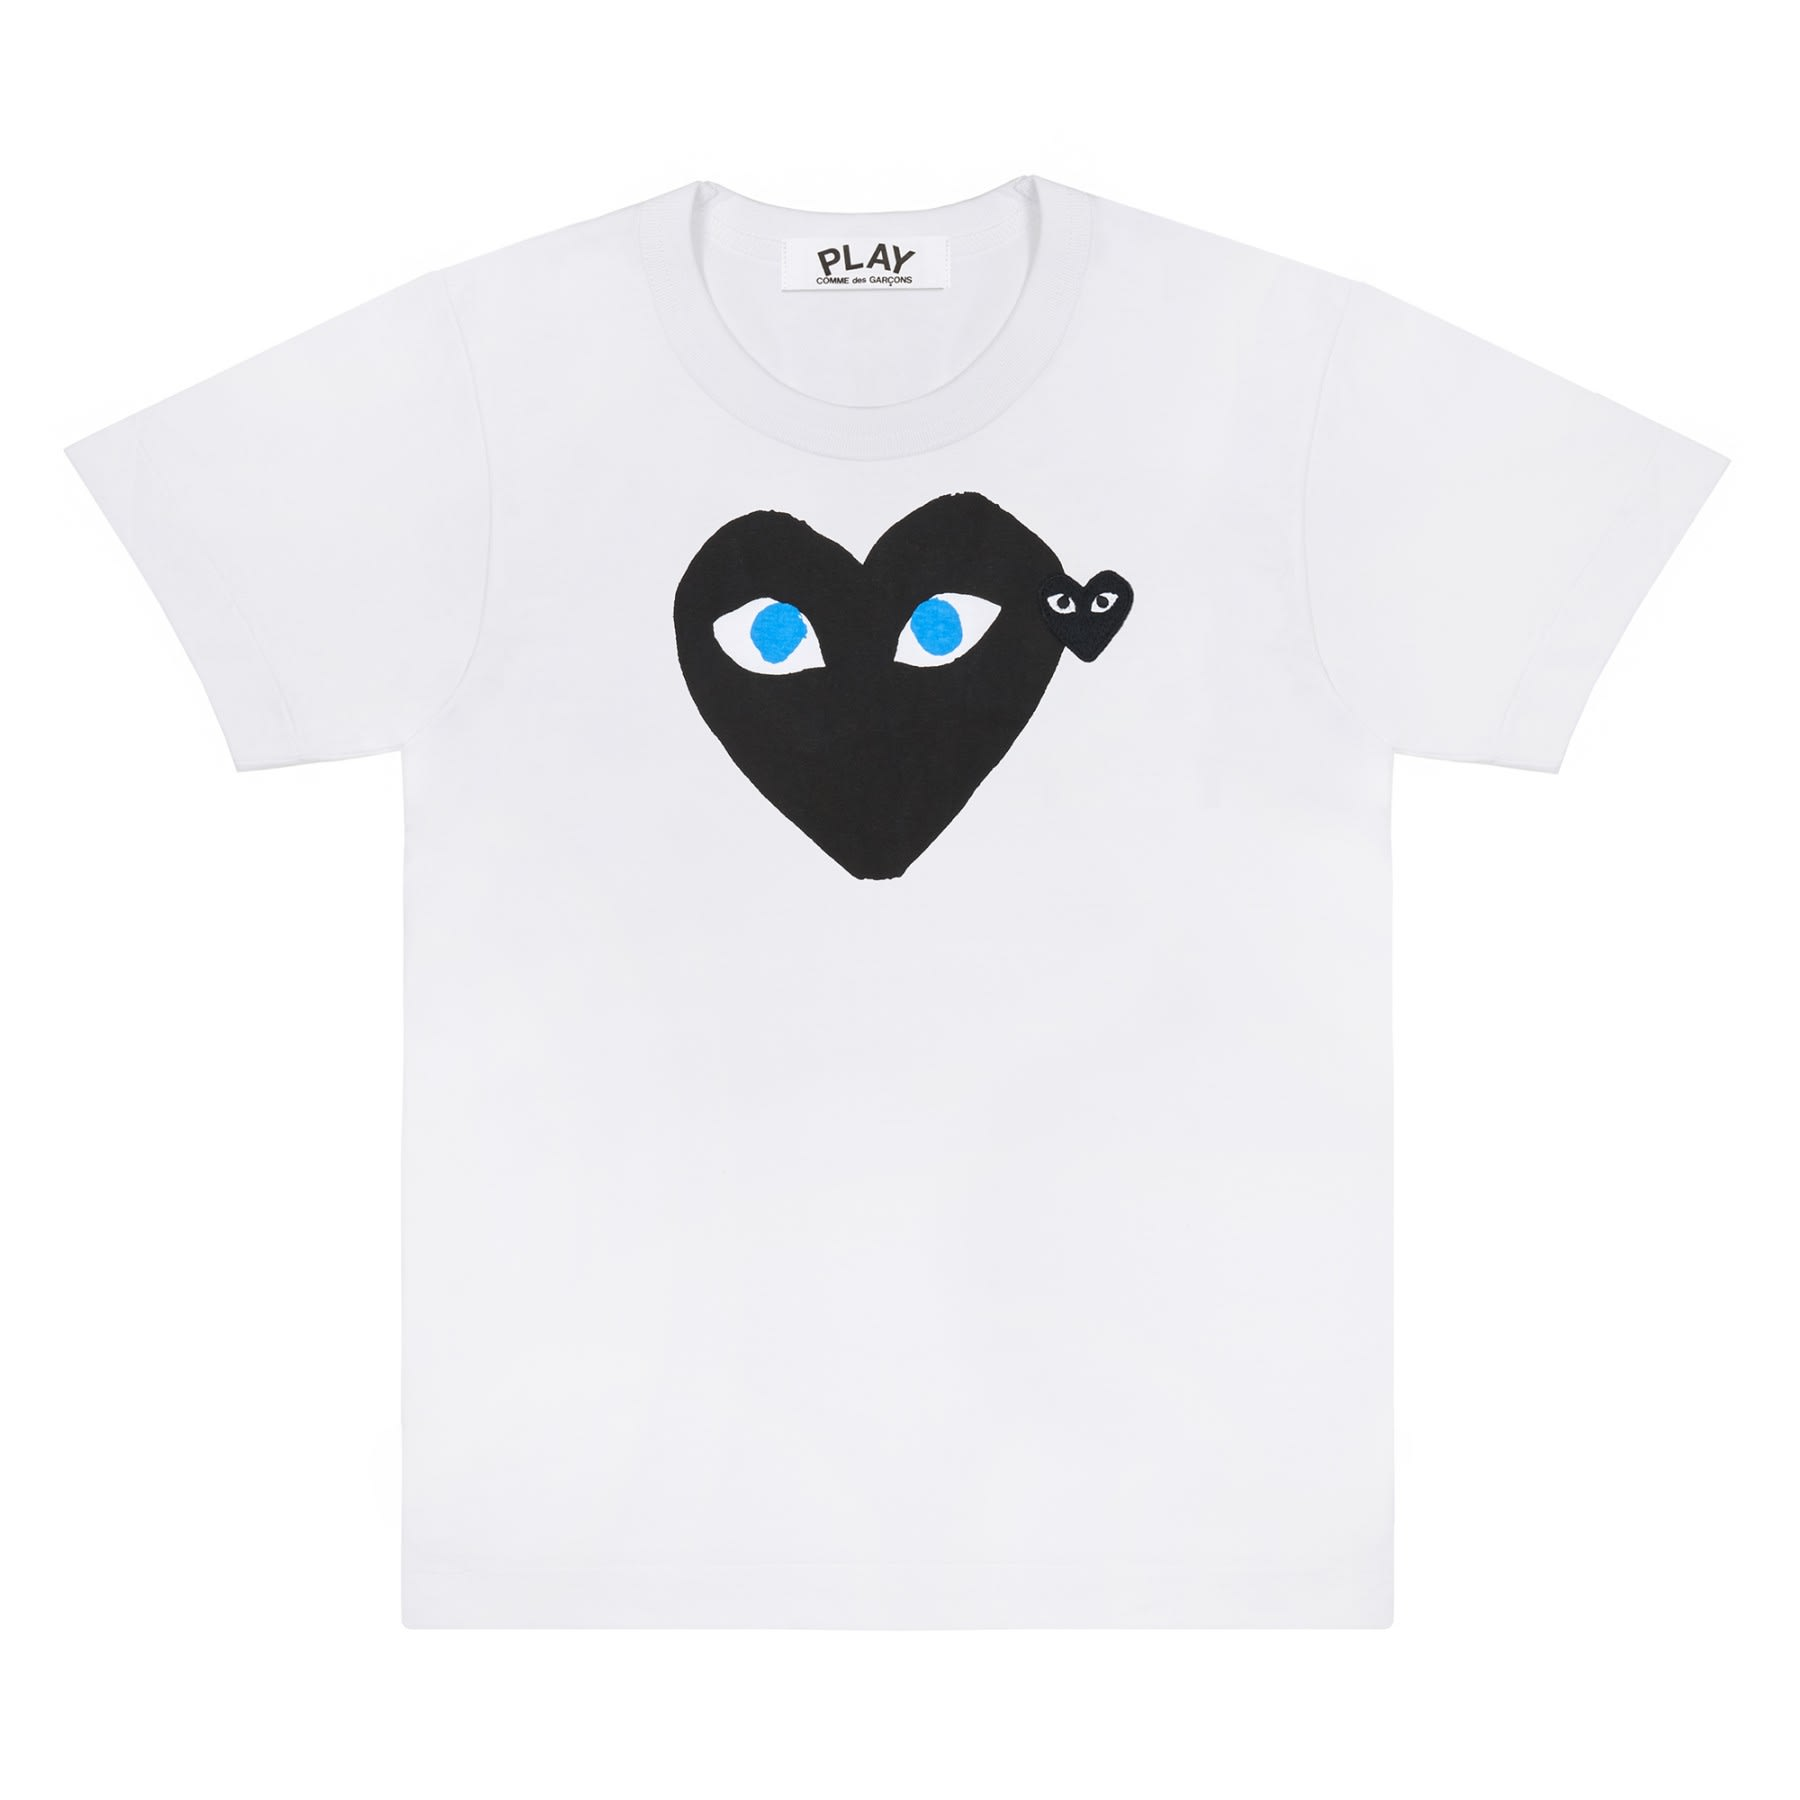 Comme Des Garcons Play Black T-Shirt With Blue Eyes